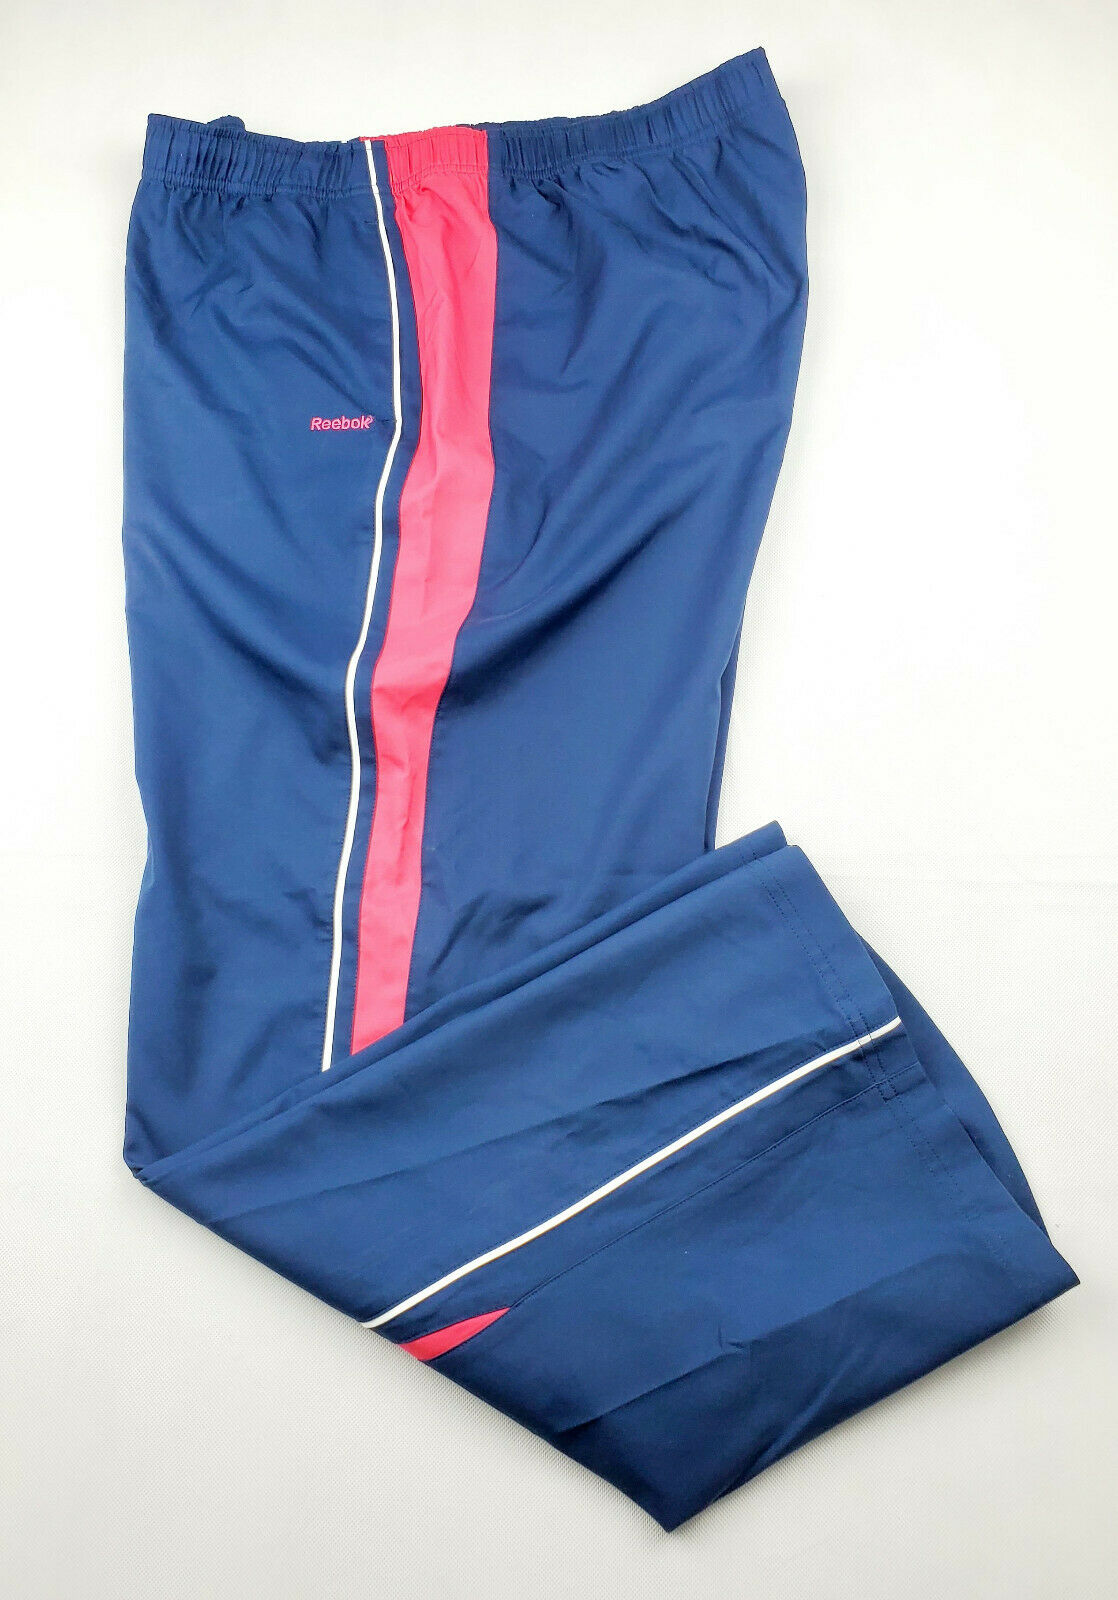 Reebok Womens Athletic Pants Size XL Navy Pink Preowned